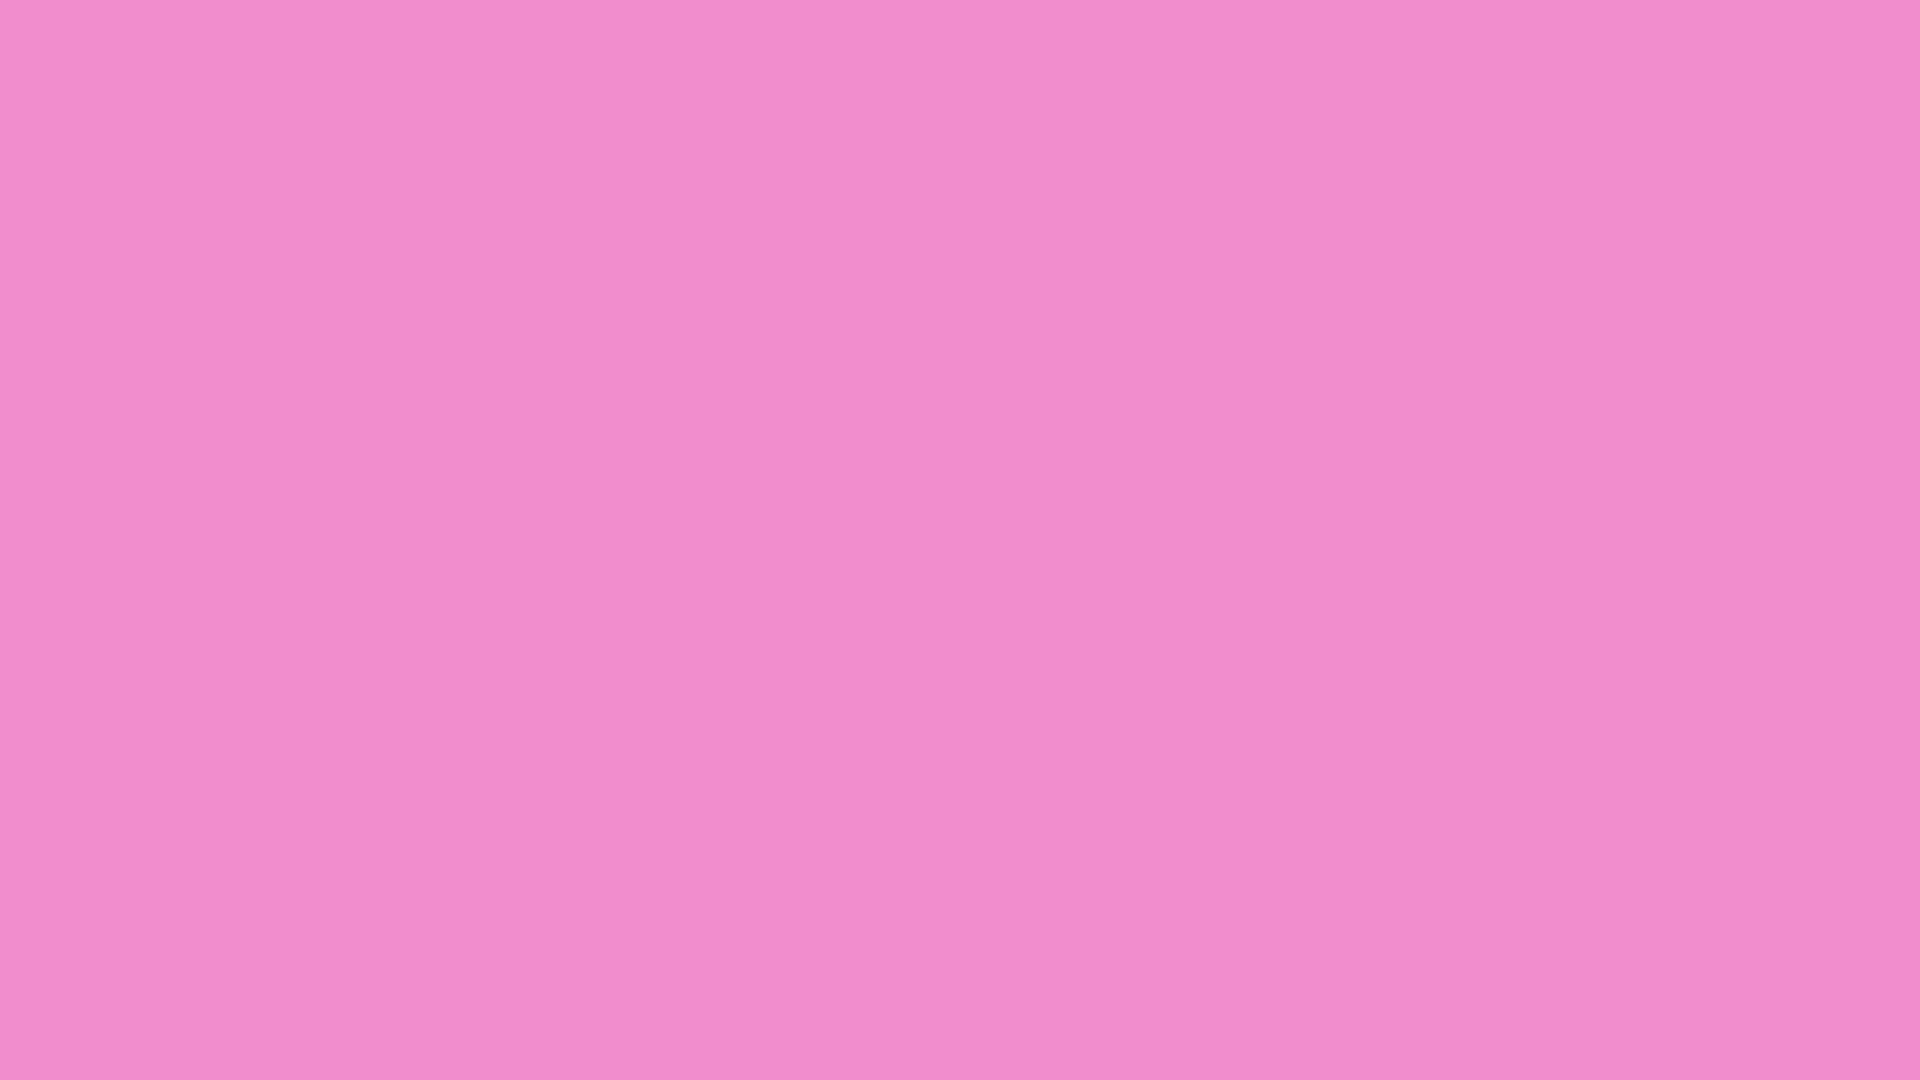 1920x1080 Orchid Pink Solid Color Background